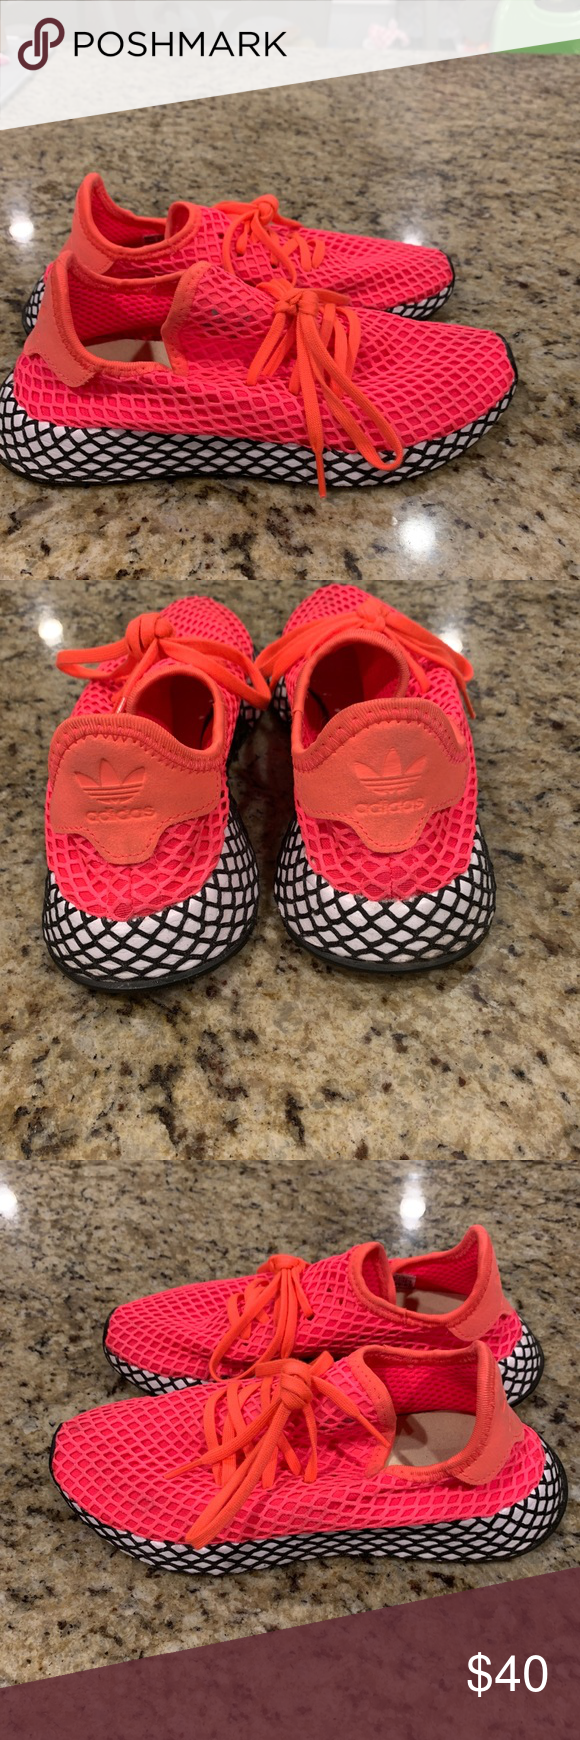 b502c1c04f688 Adidas Deerupt Adidas Deerupt kids Size 4.5 like new barely worn